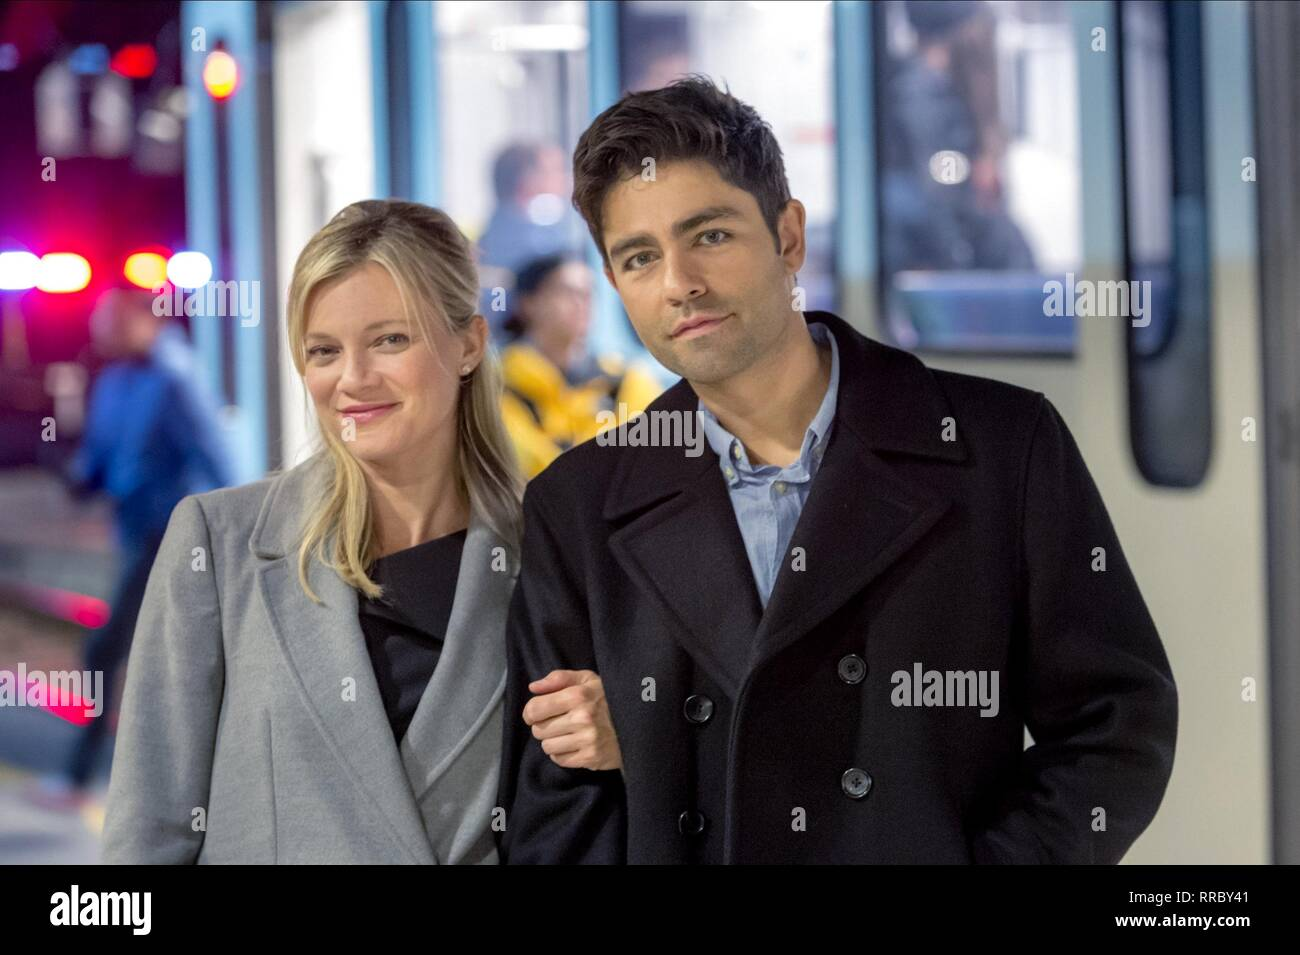 LOVE AT FIRST GLANCE, AMY SMART , ADRIAN GRENIER, 2017 - Stock Image